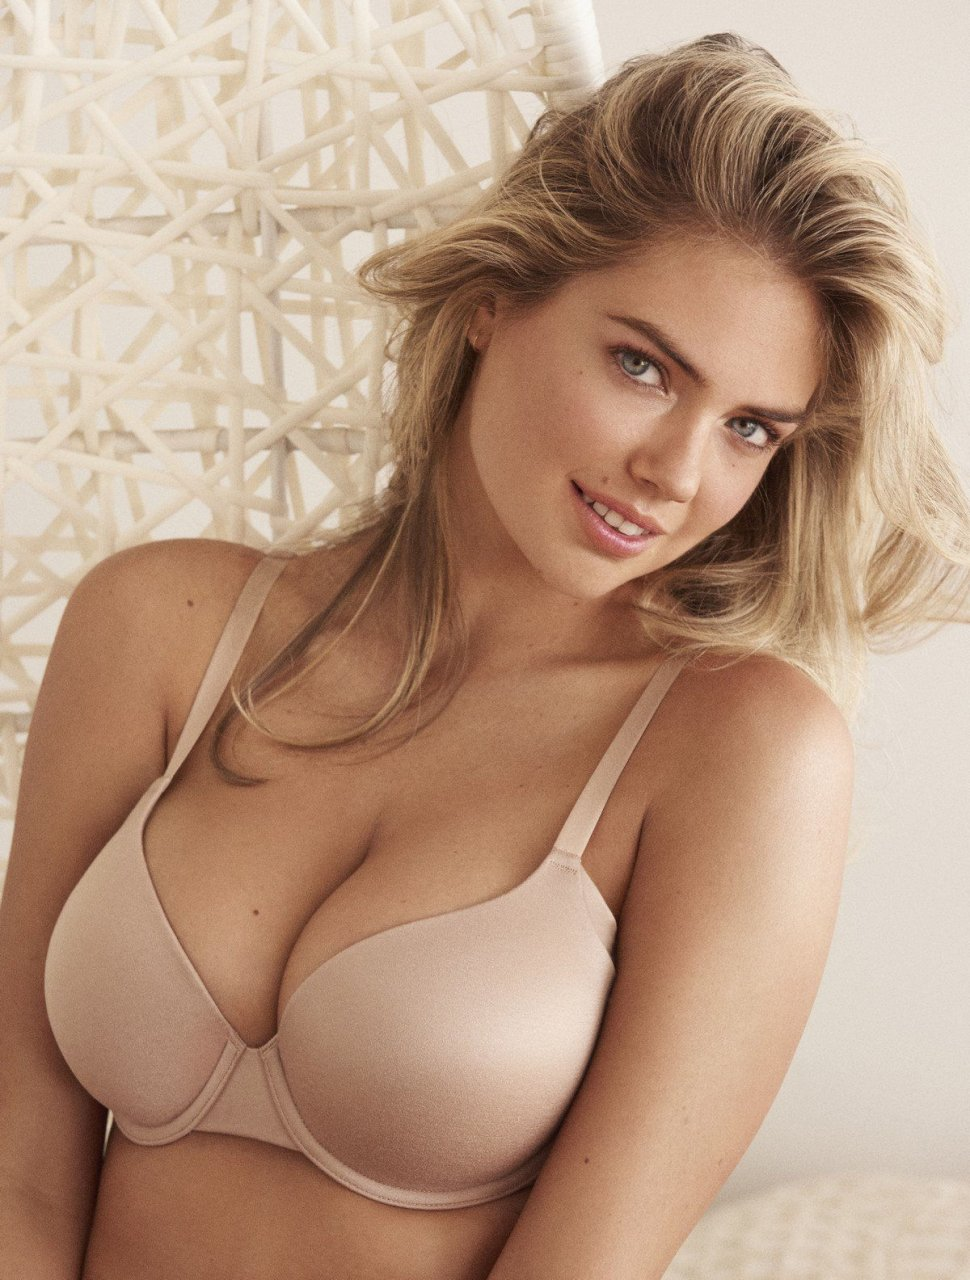 Kate Upton Sexy 36 Photos Video